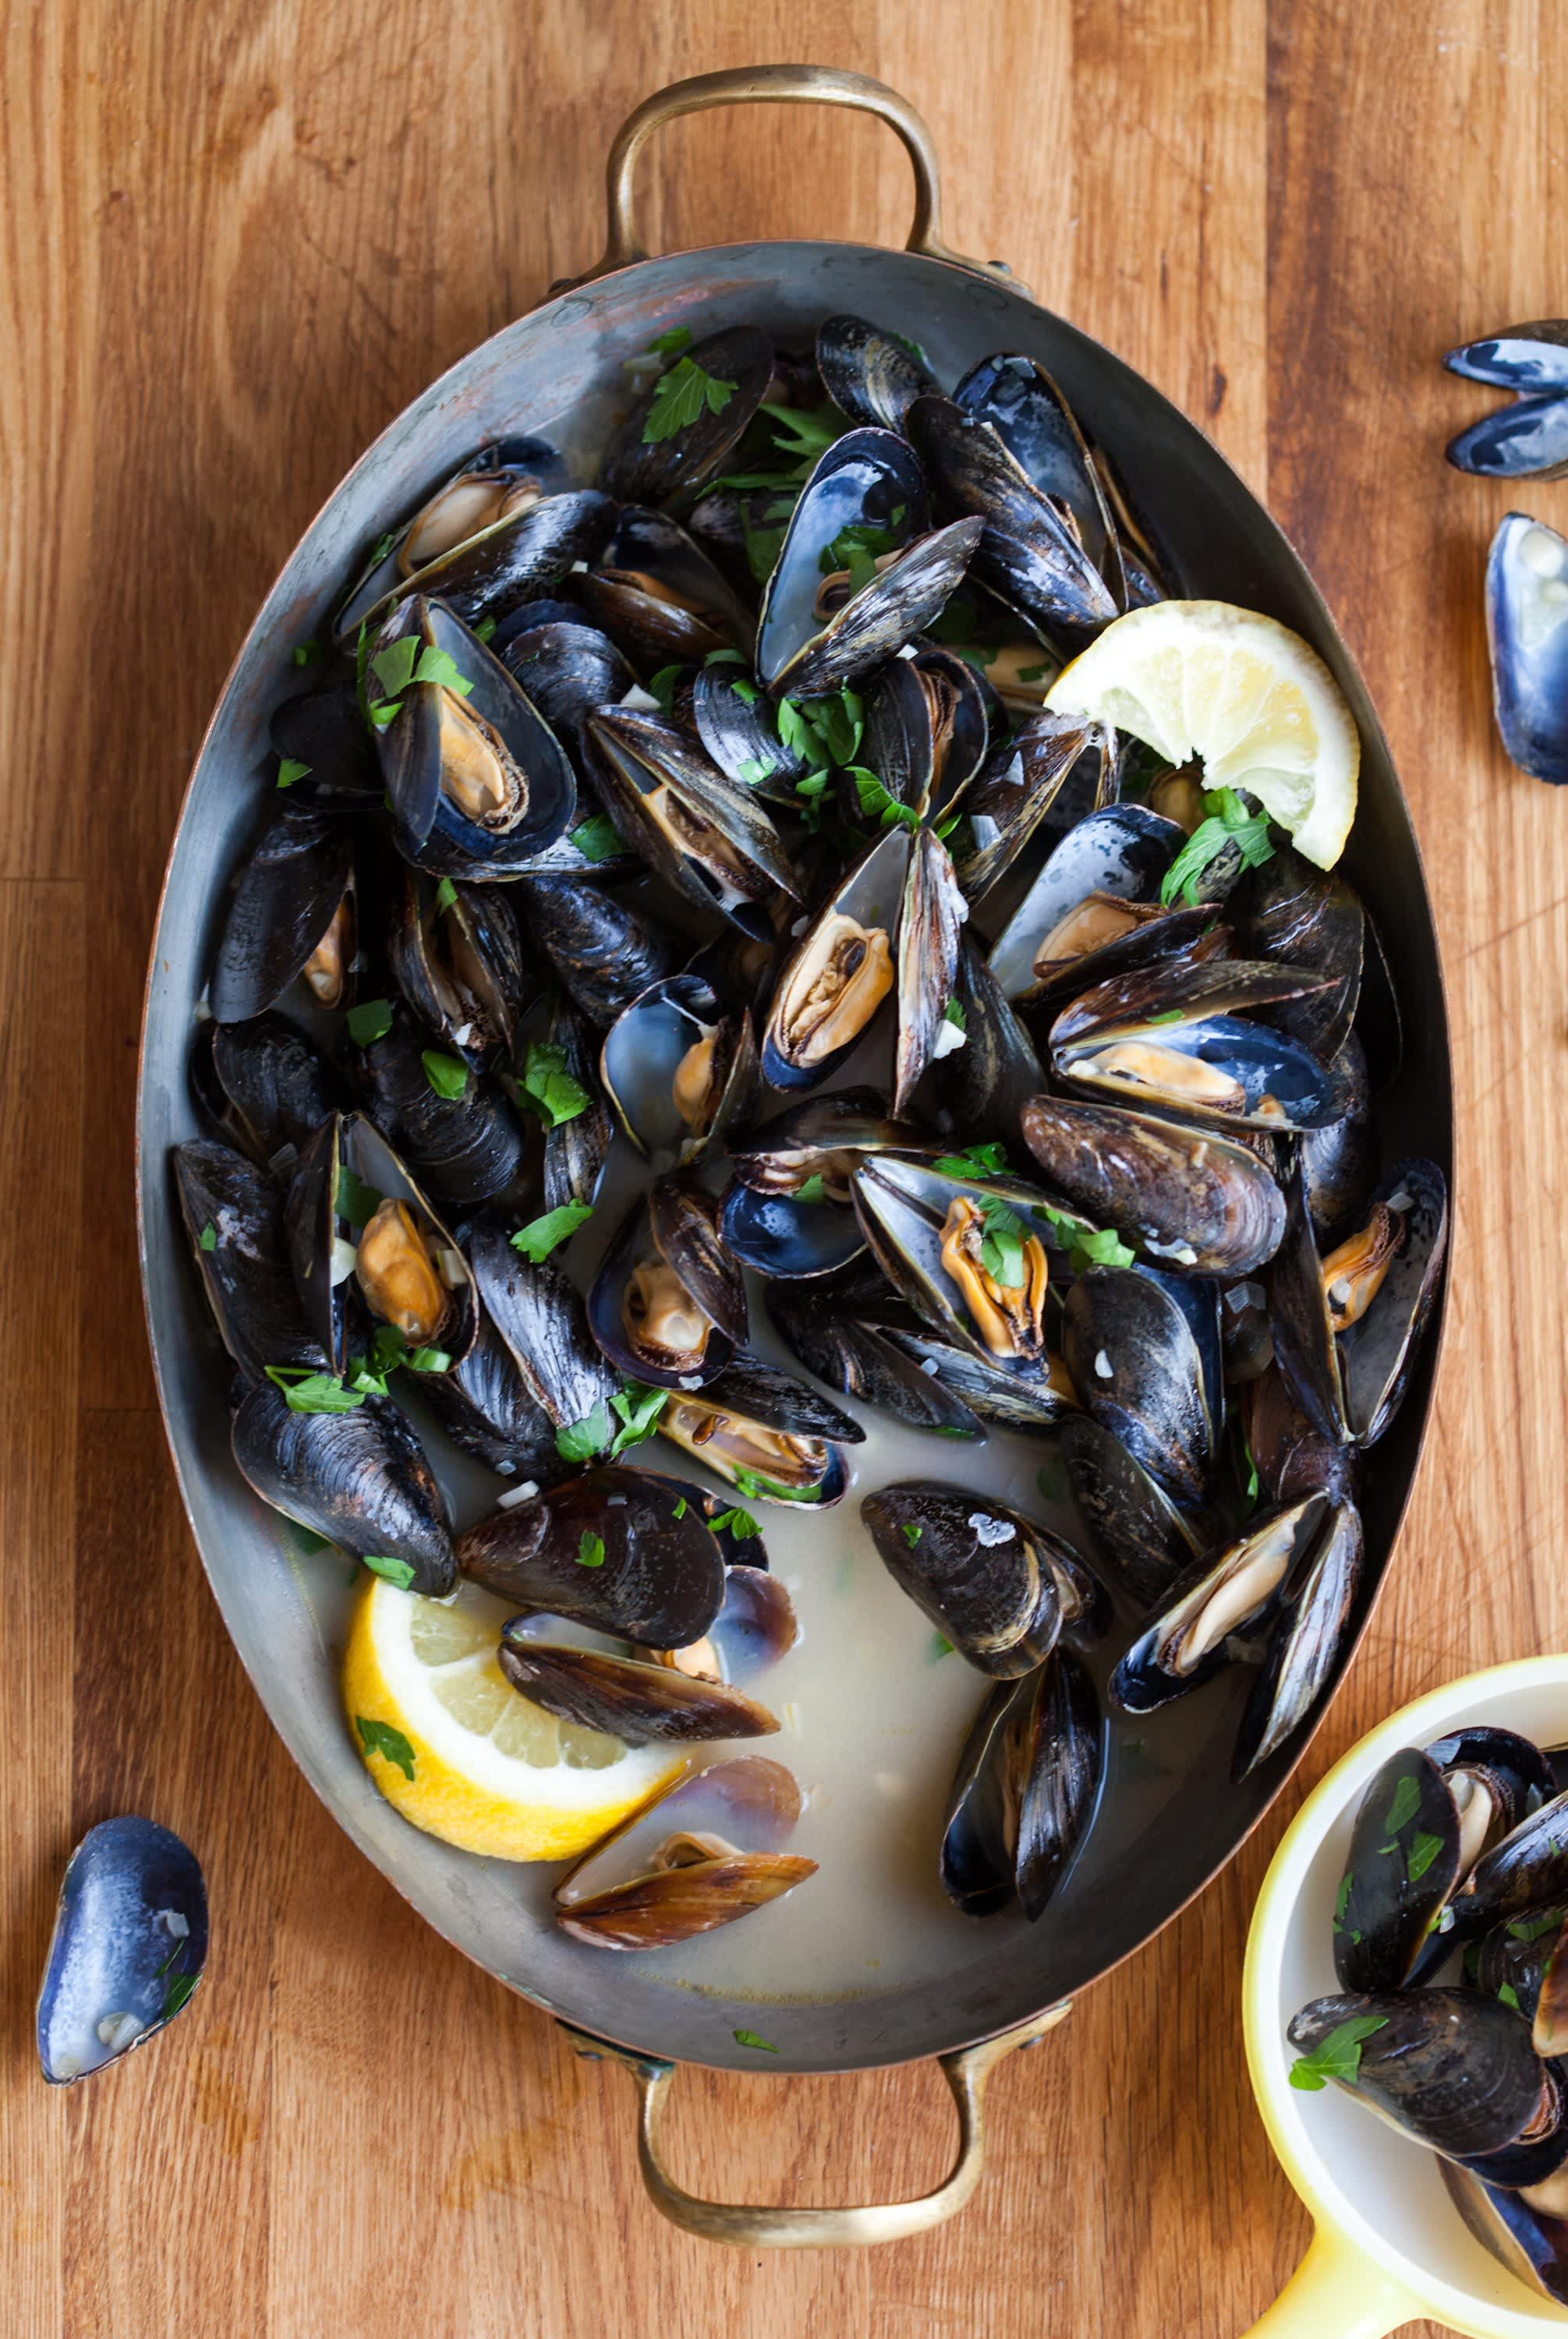 Living Room Decorating Ideas For Apartments For Cheap: Try This Simple Tip For Plump Steamed Mussels And Clams